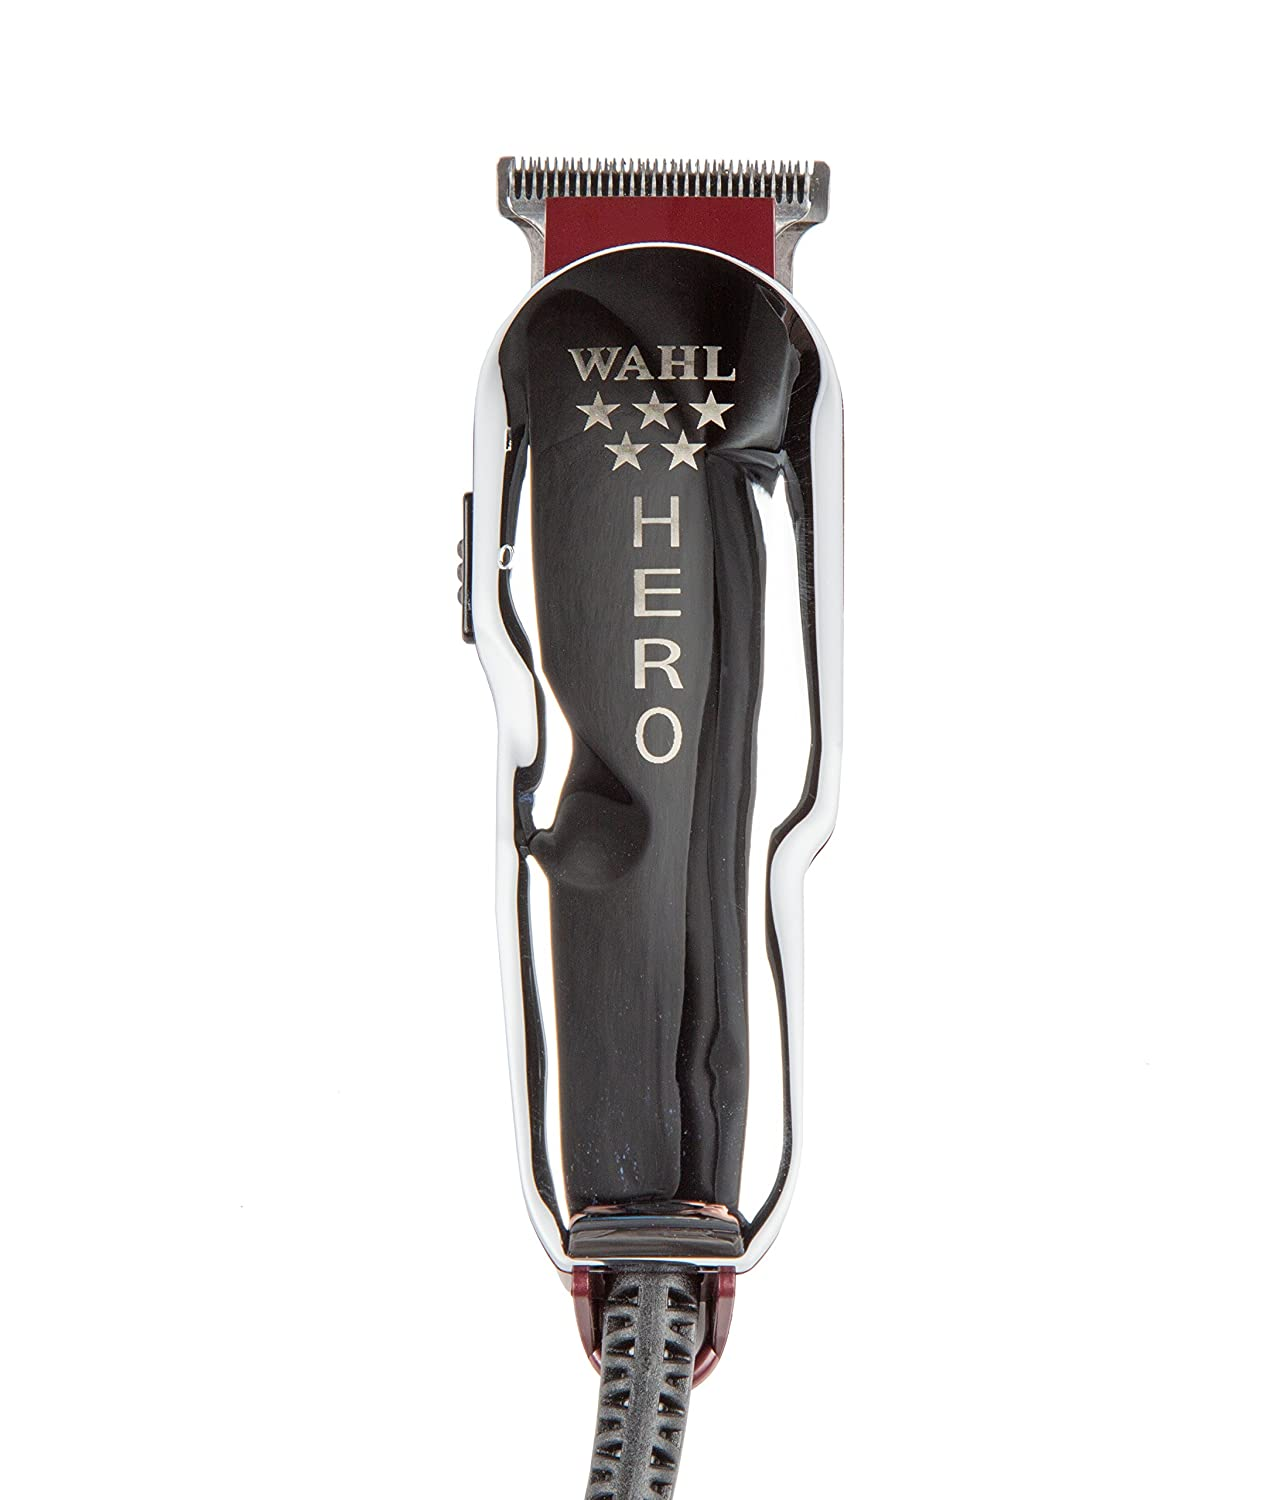 26.WAHL HAIR TRIMMER HERO WAHL 5 STAR